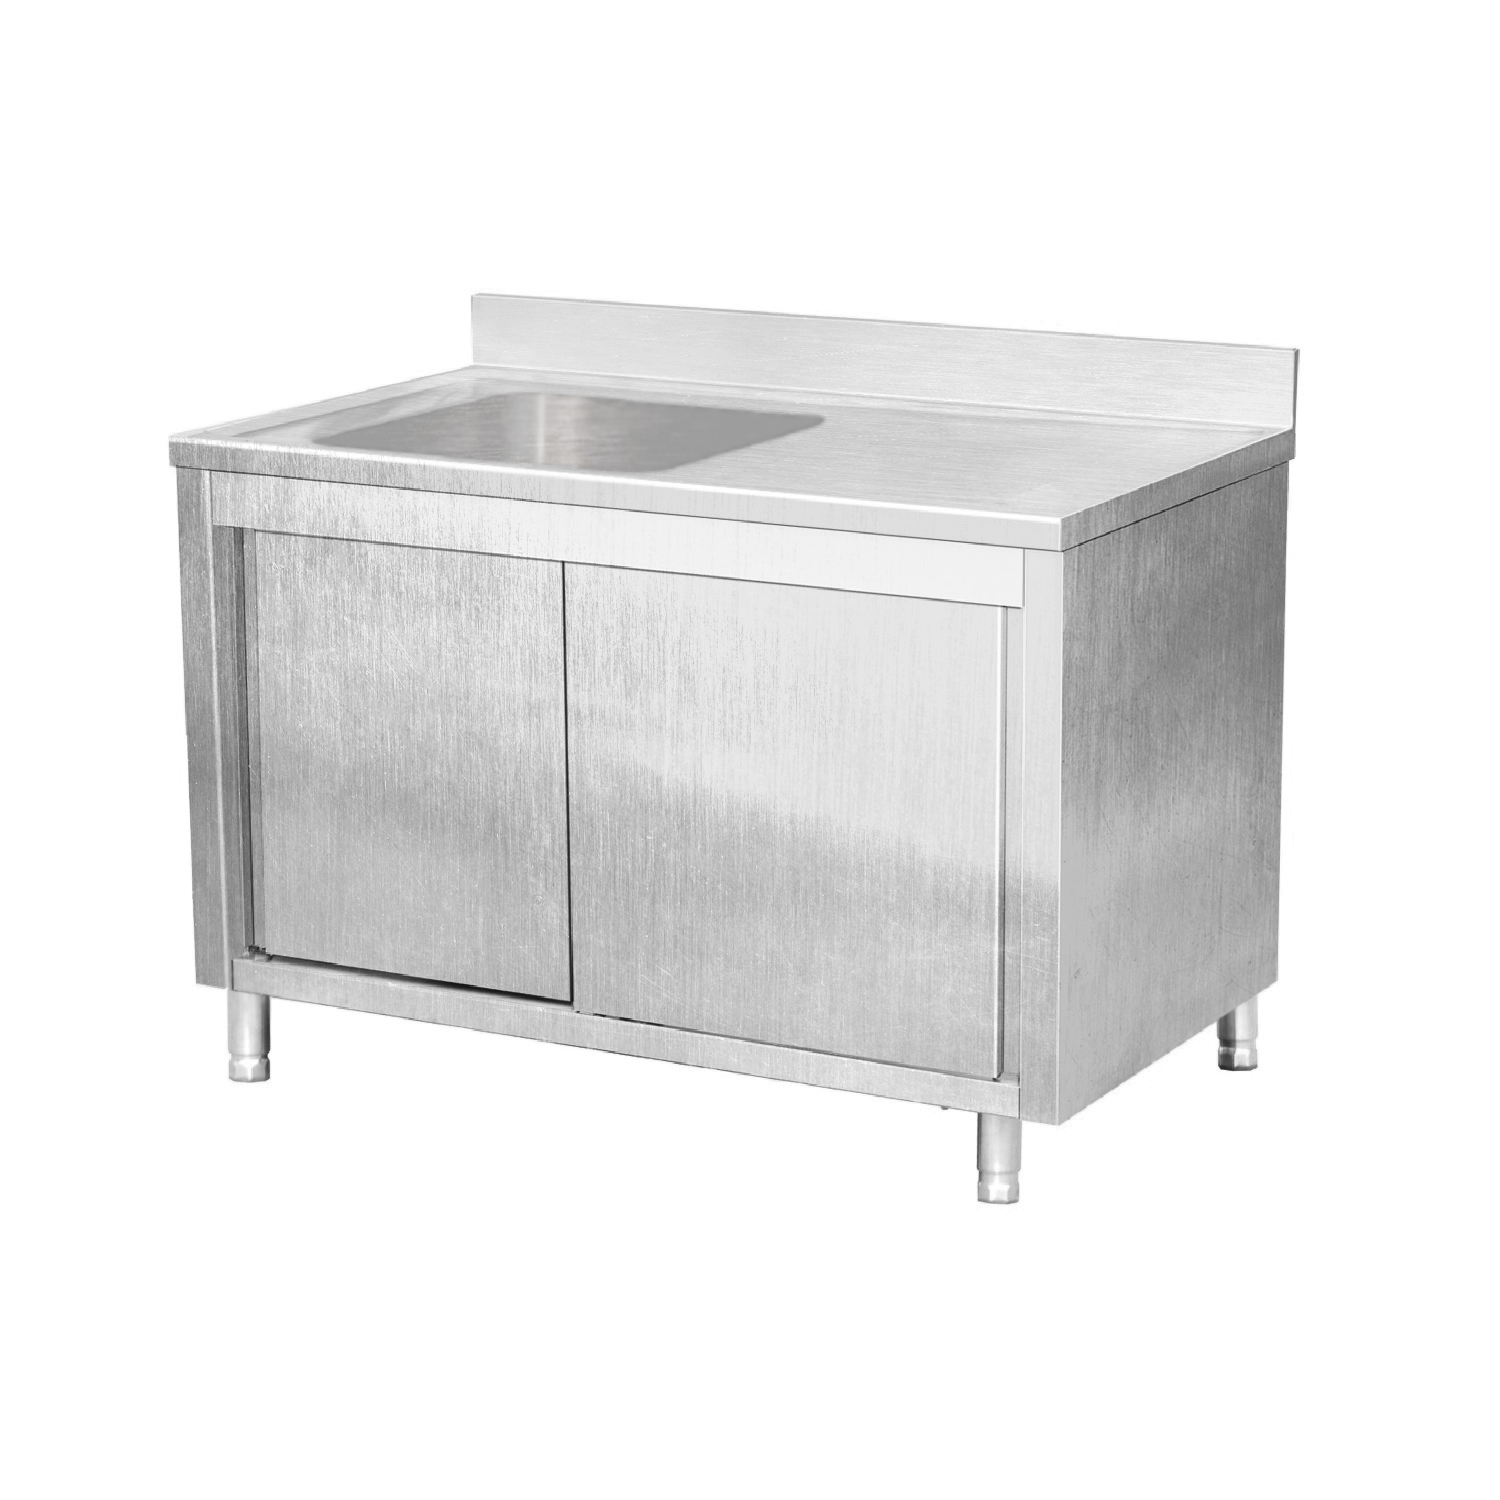 Commercial Stainless Steel Kitchen Cabinets: EQ Commercial Stainless Steel Work Table Cabinet Sliding